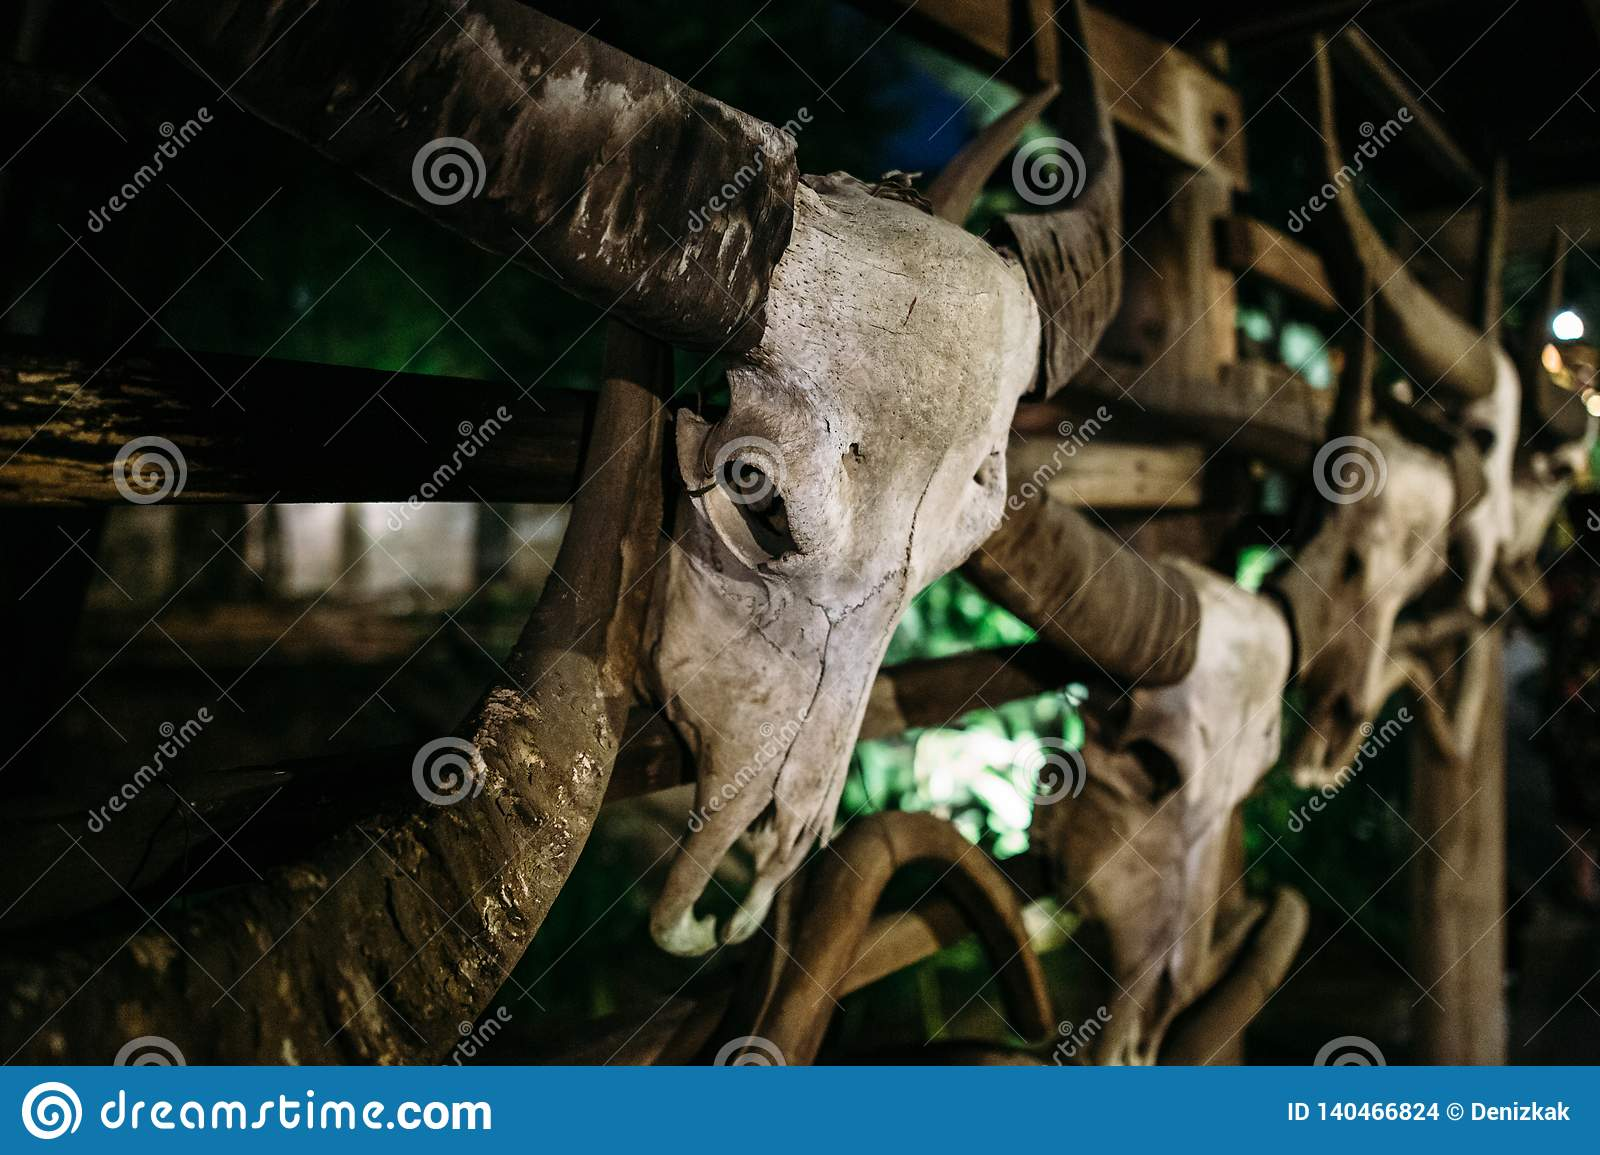 The skull of a bull hangs on the wall. Very old and worn from time to time